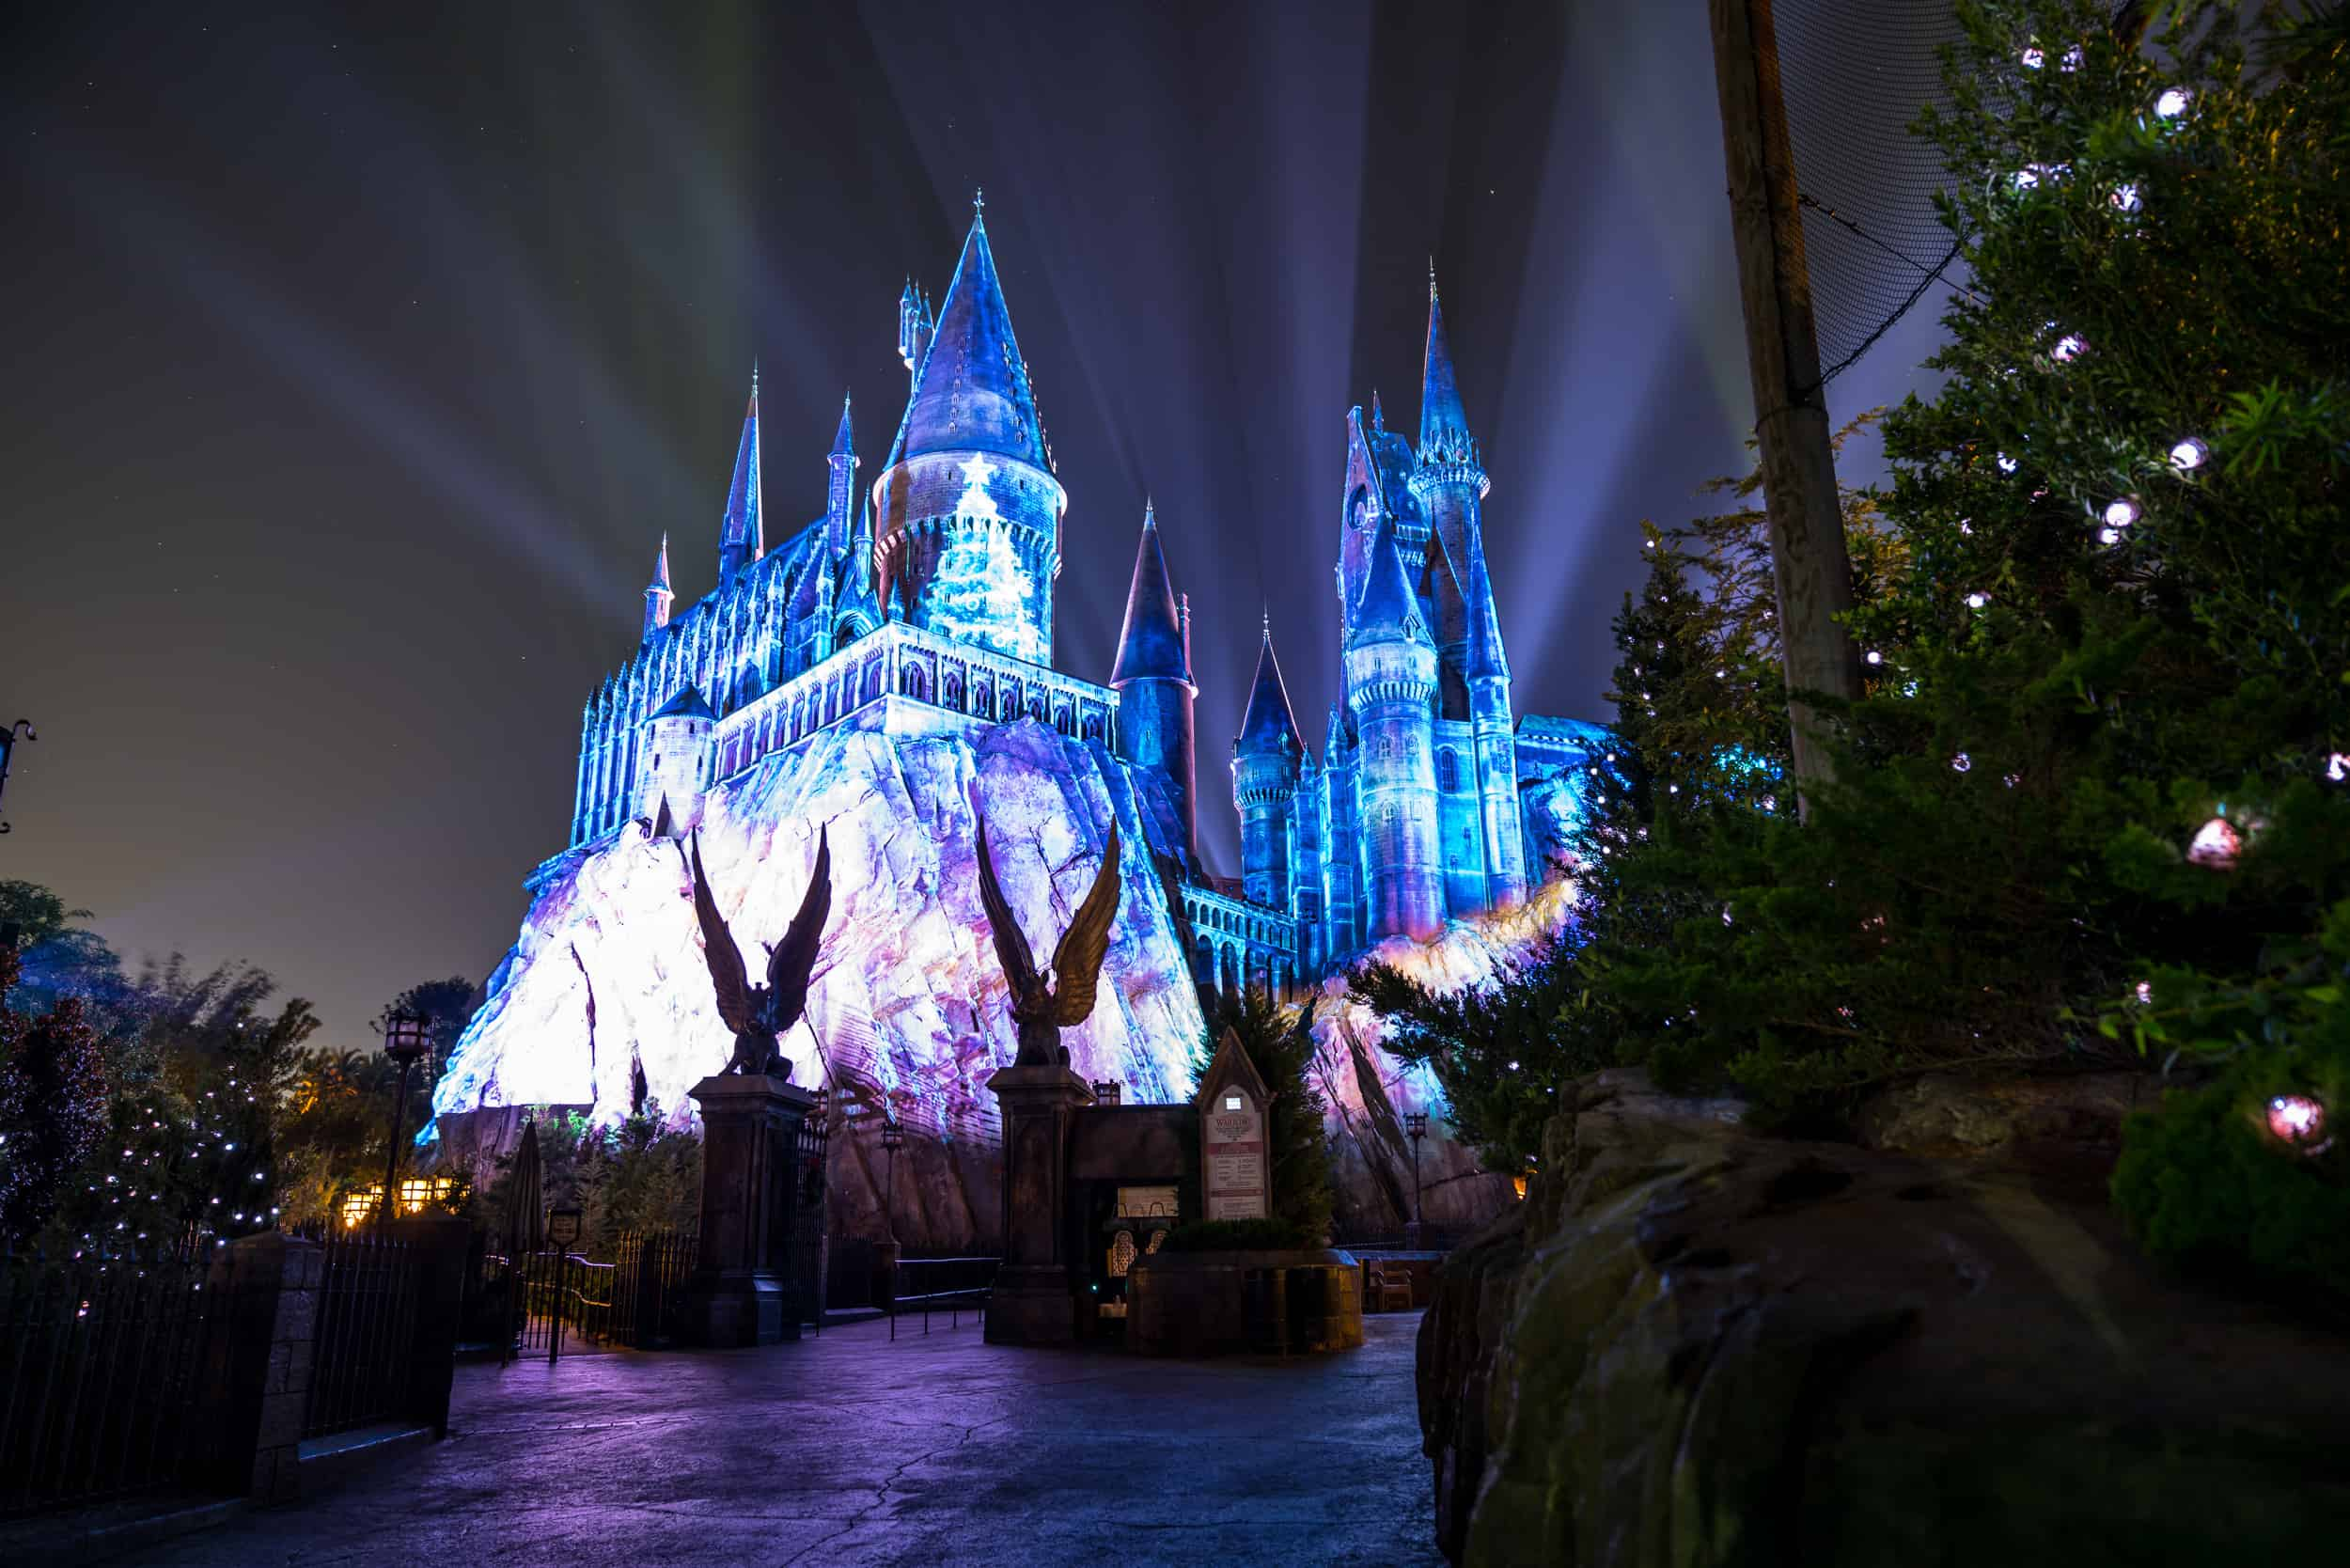 Harry Potter: 4 ways Hogsmeade is better than Diagon Alley